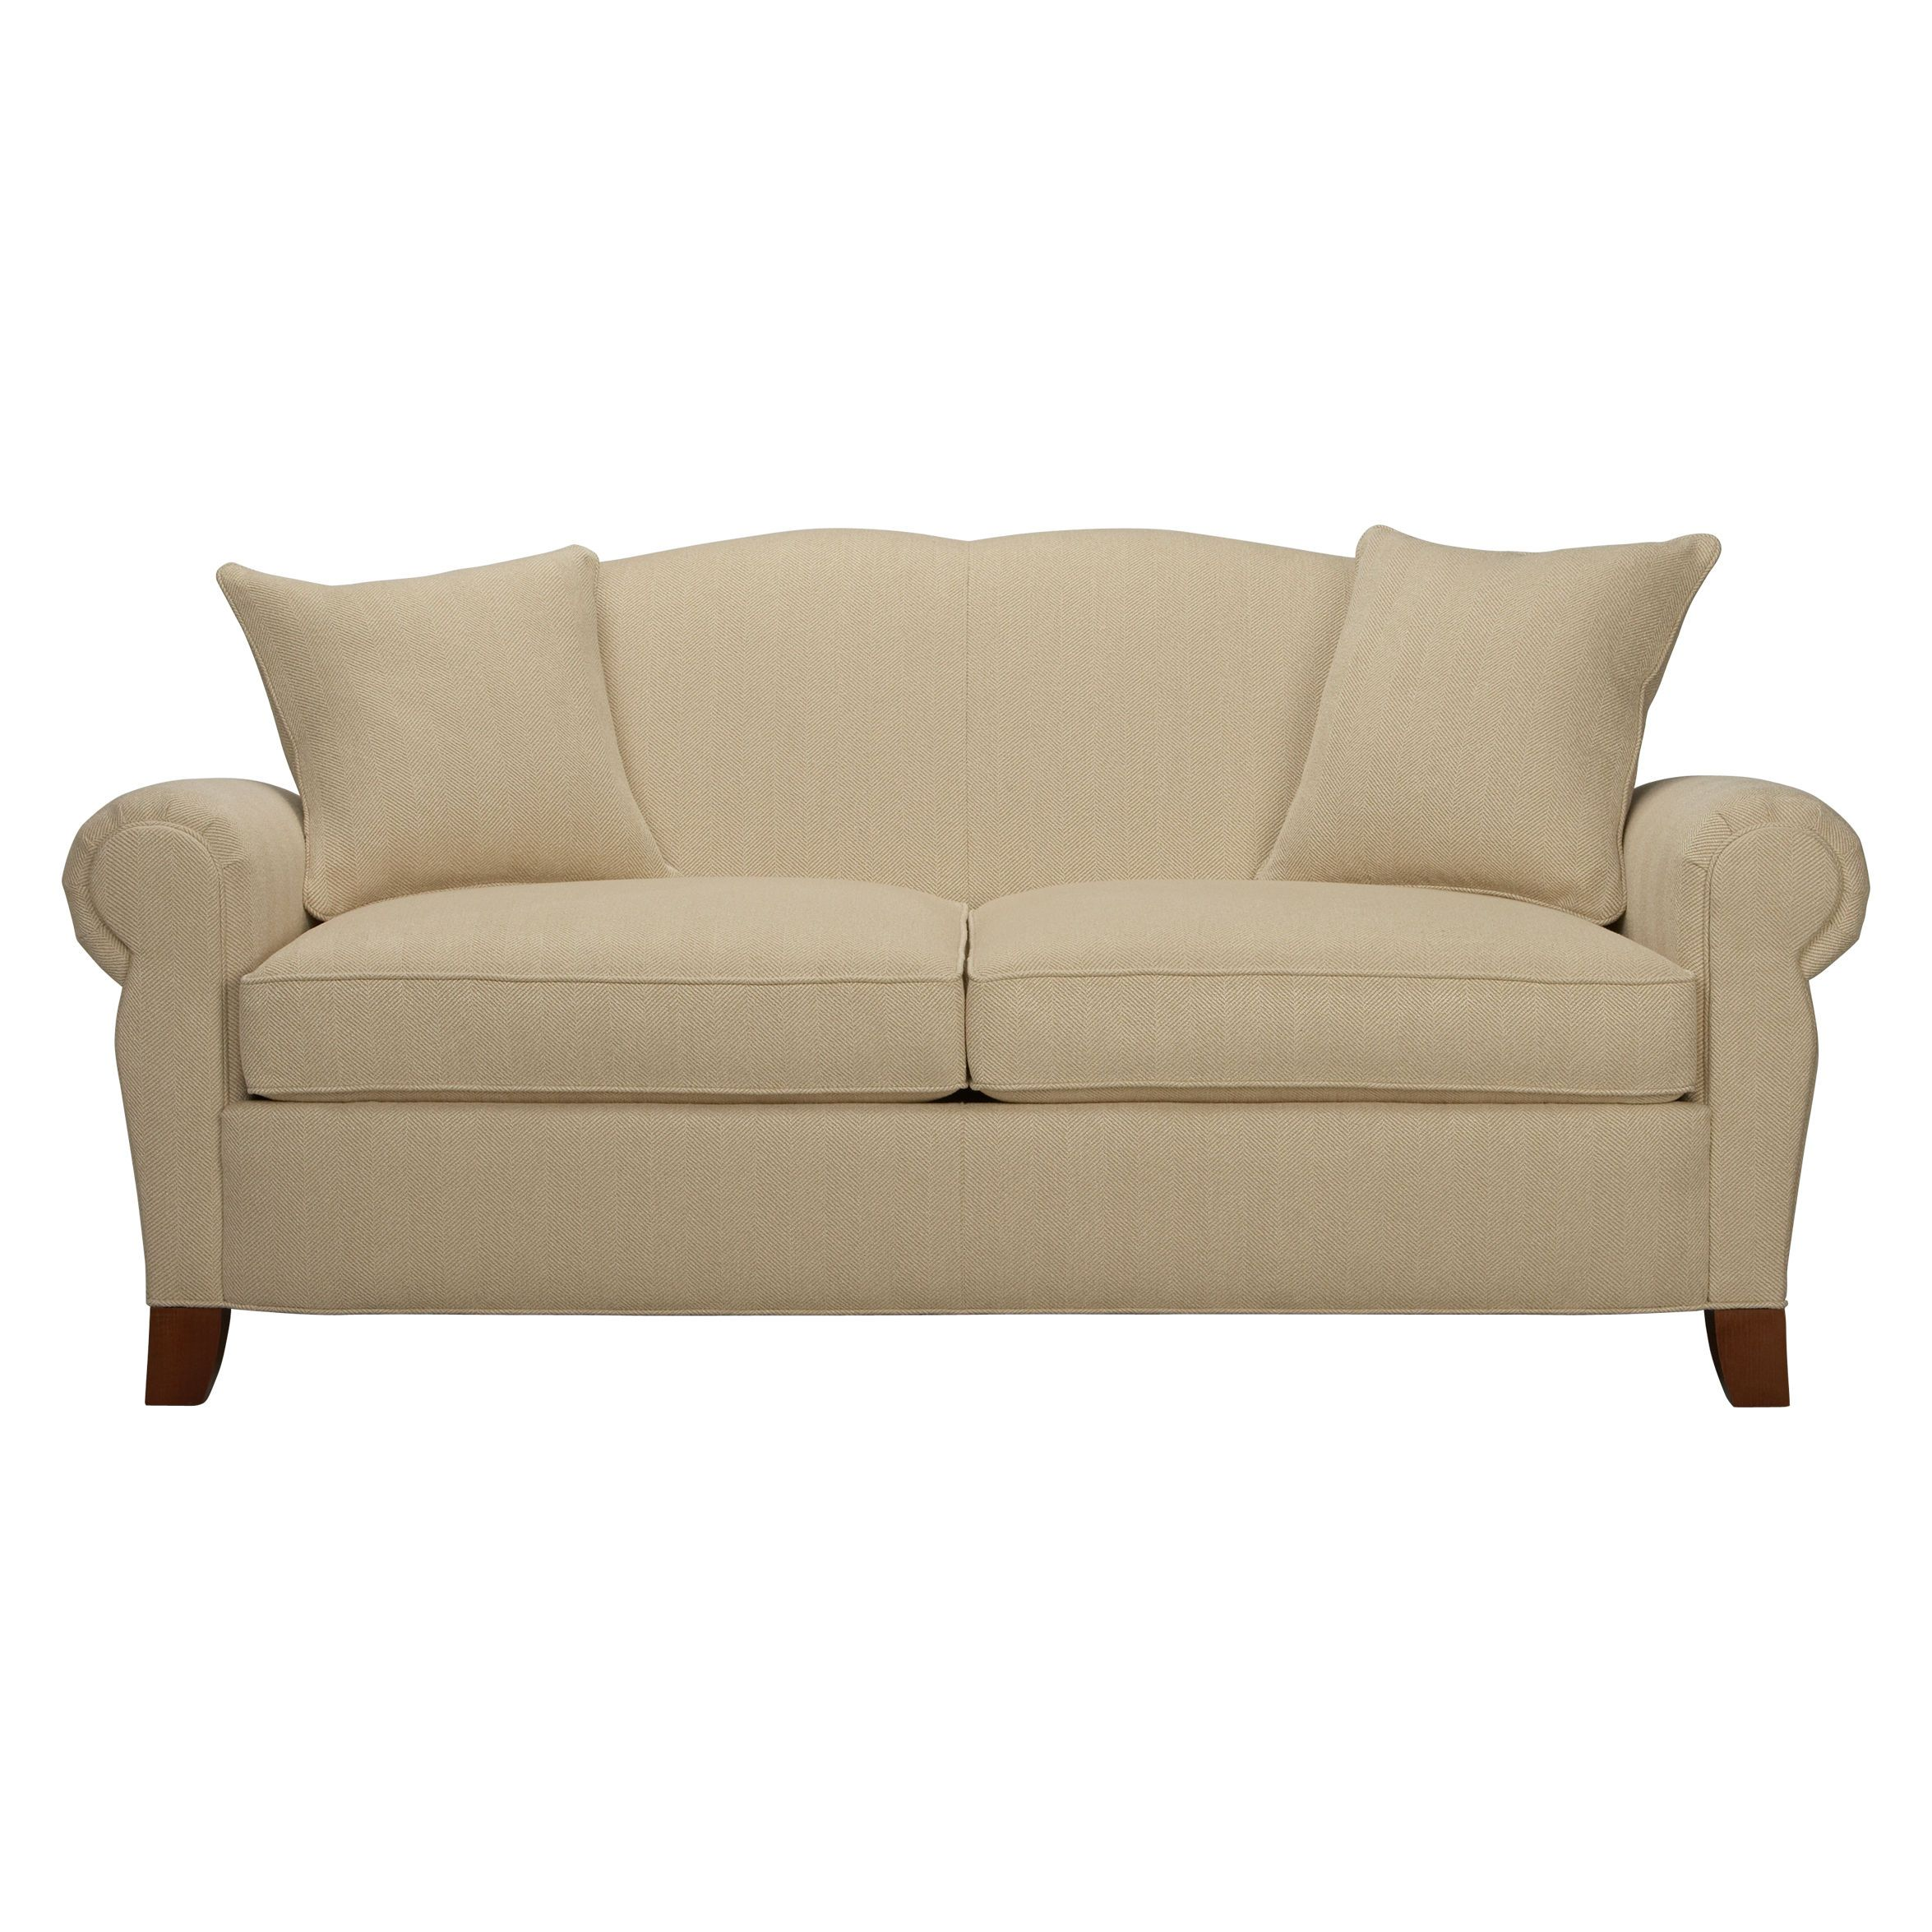 paramount sofa ethan allen reclining and loveseat combo paloma two cushion us home